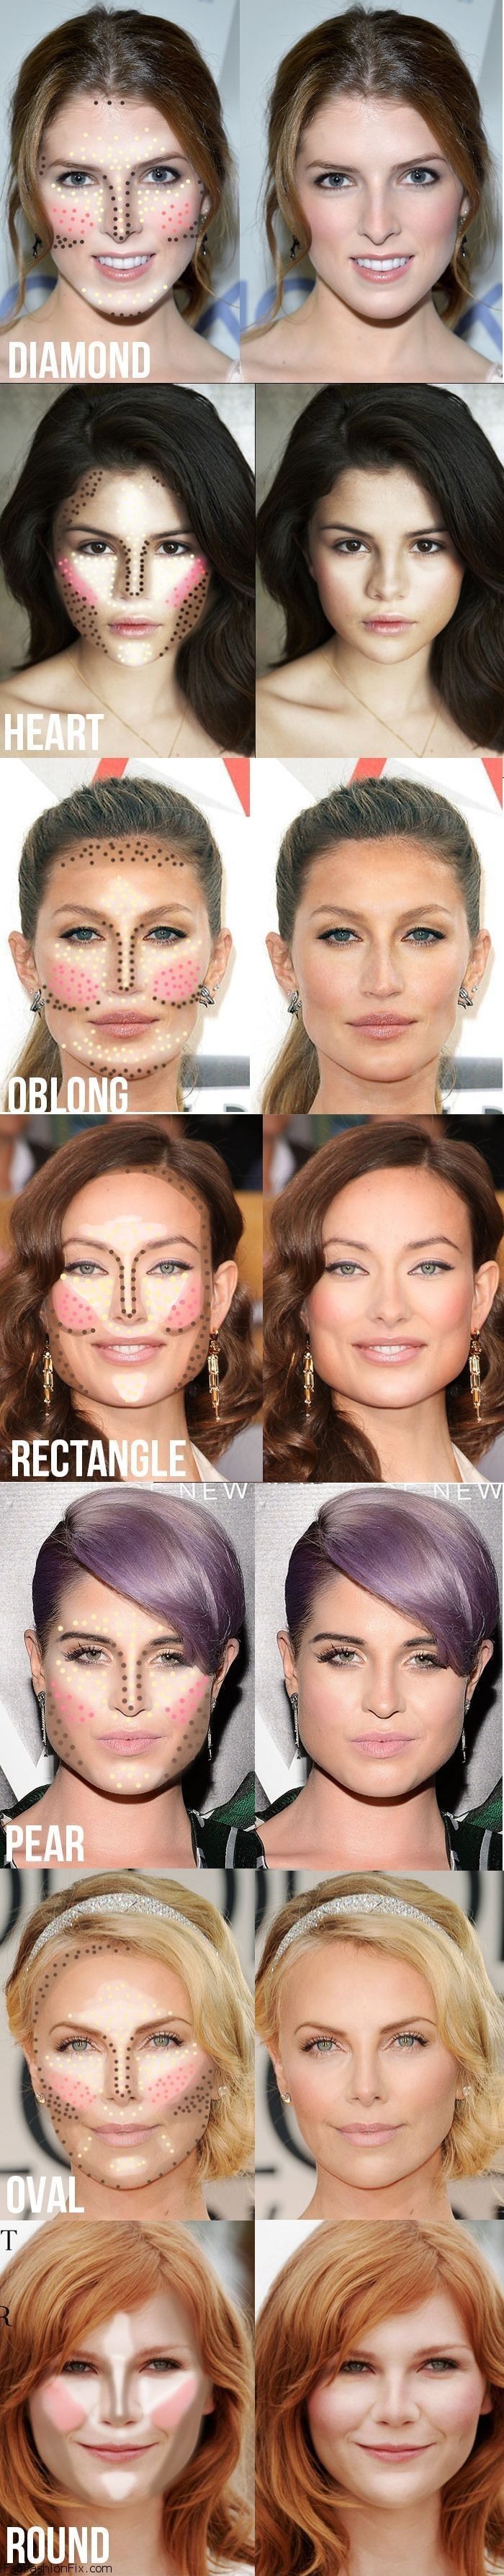 Define your face shape before doing contouring. #makeup #contour